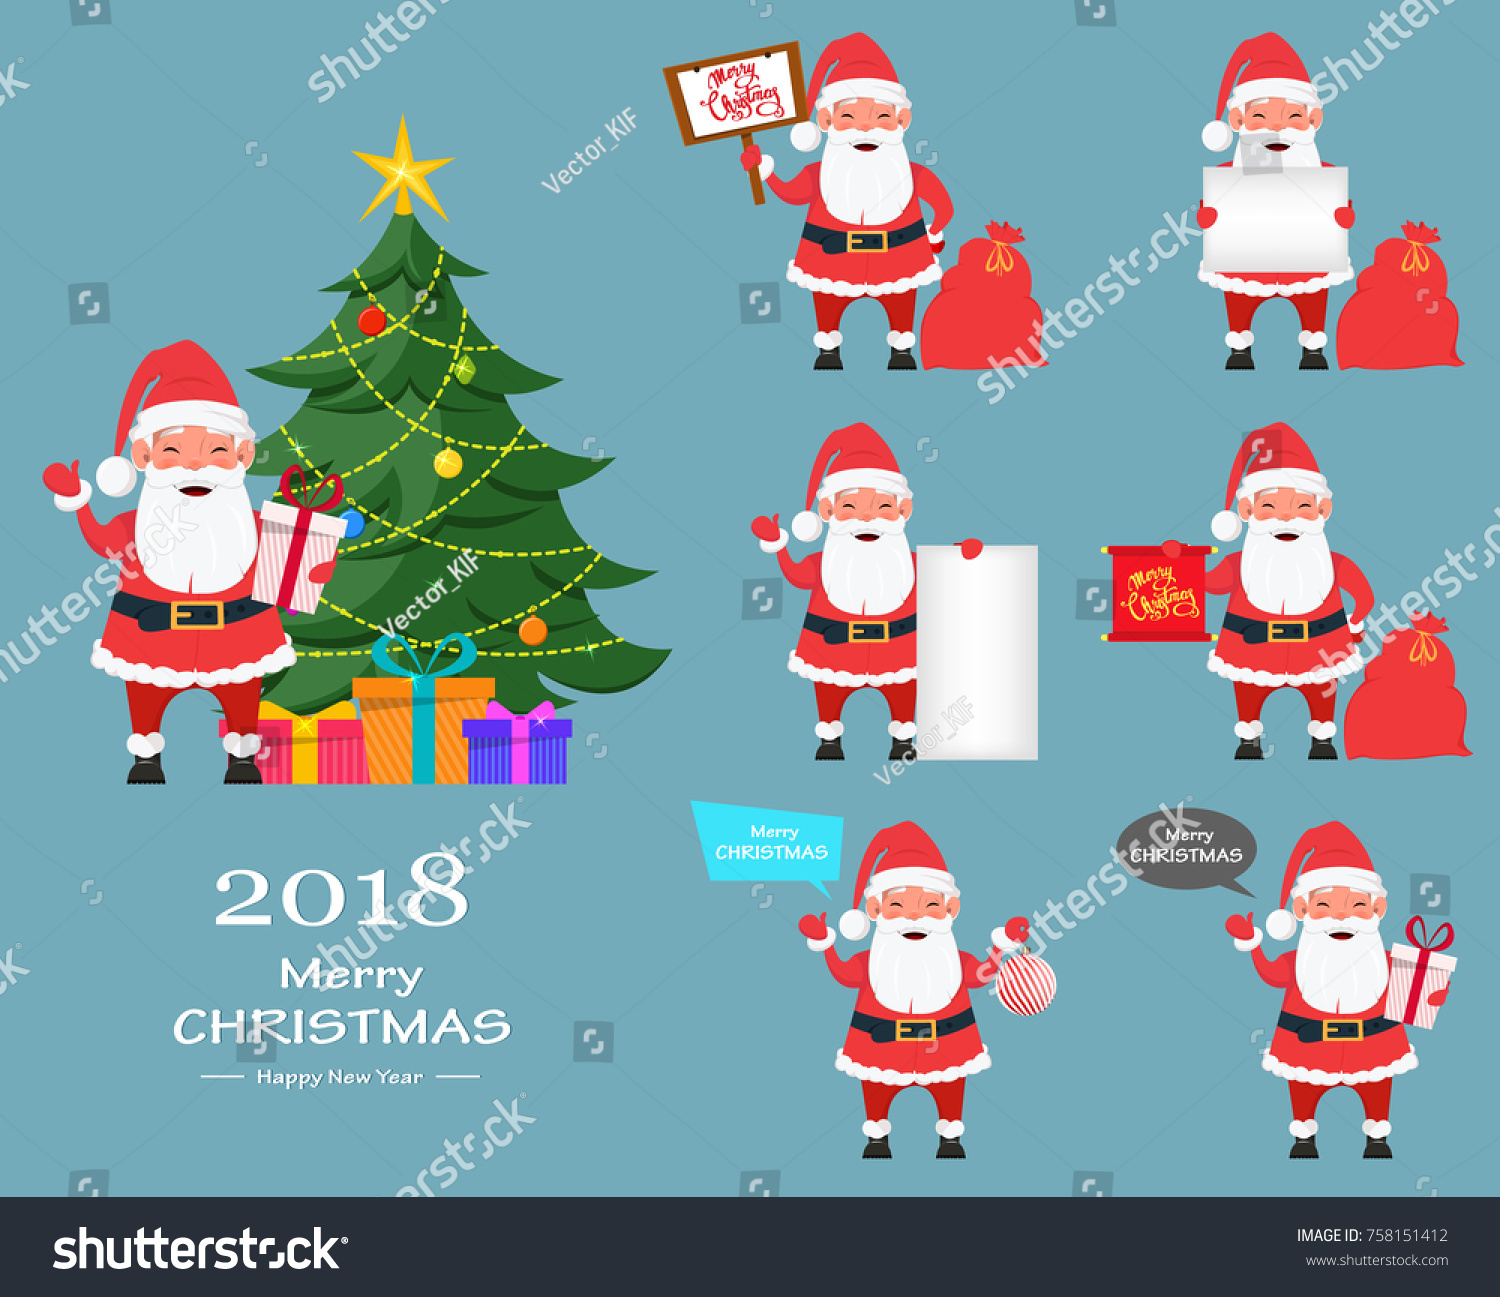 Merry christmas happy new year greeting stock vector 758151412 merry christmas and a happy new year greeting card set of santa claus funny kristyandbryce Choice Image